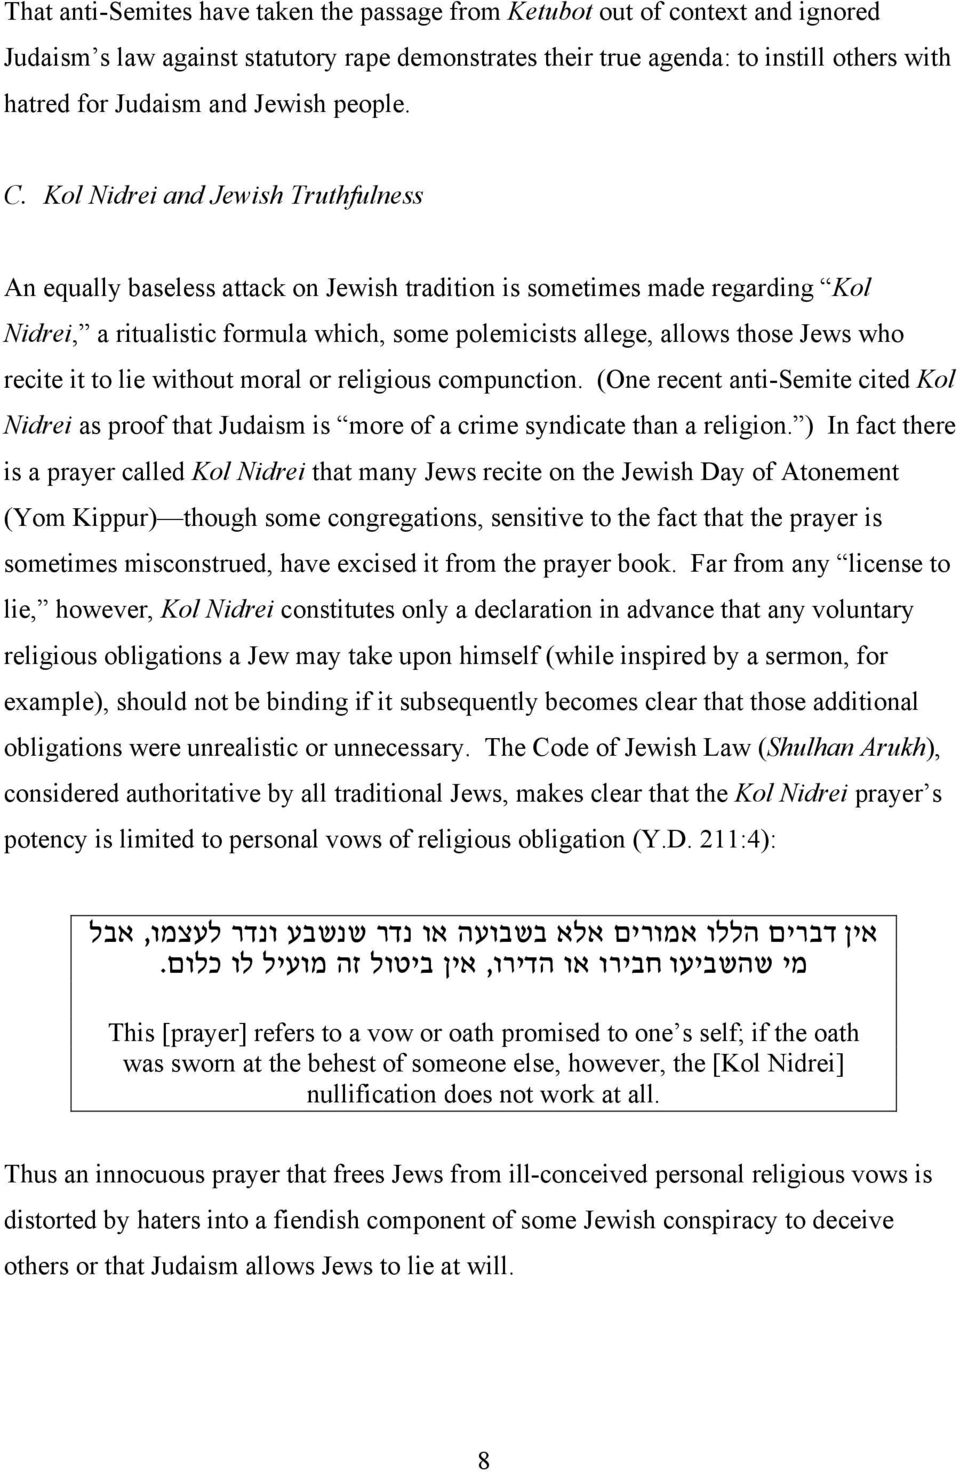 Kol Nidrei and Jewish Truthfulness An equally baseless attack on Jewish tradition is sometimes made regarding Kol Nidrei, a ritualistic formula which, some polemicists allege, allows those Jews who